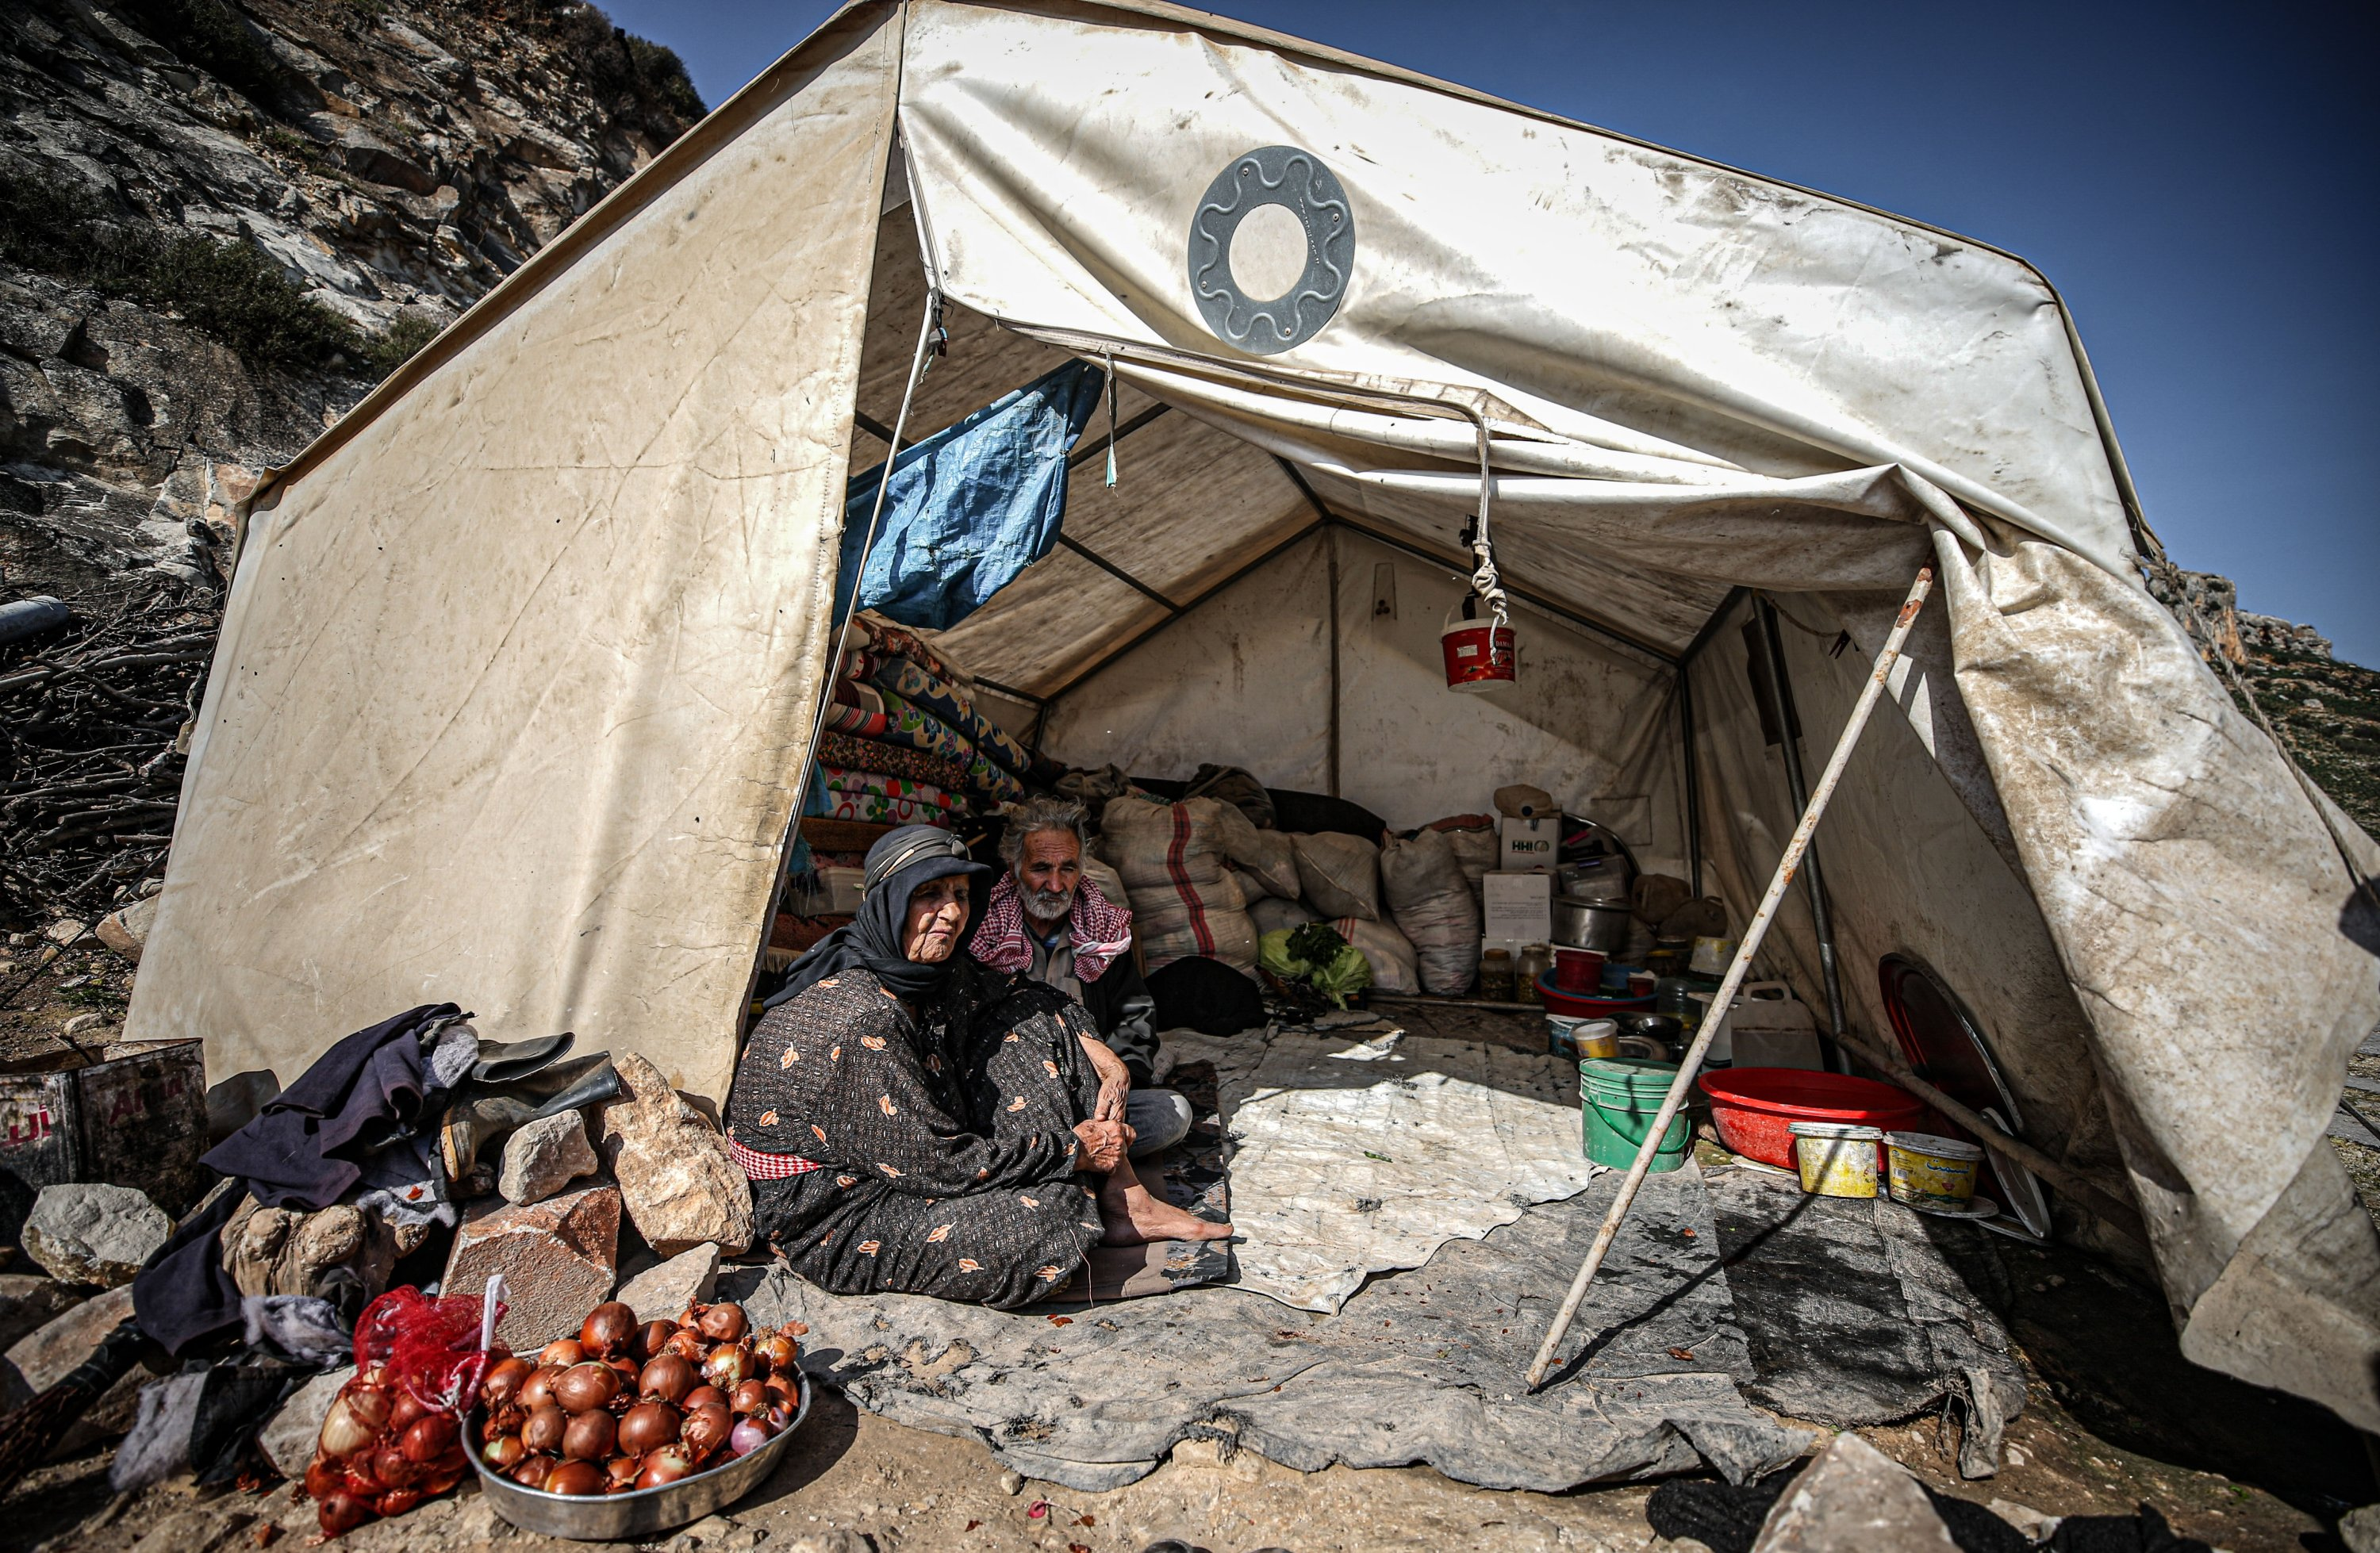 A Syrian family sits in a tent in the Sheik Isa tent camp, located close to the Orontes (Asi) River, Jan. 29, 2021. (AA)